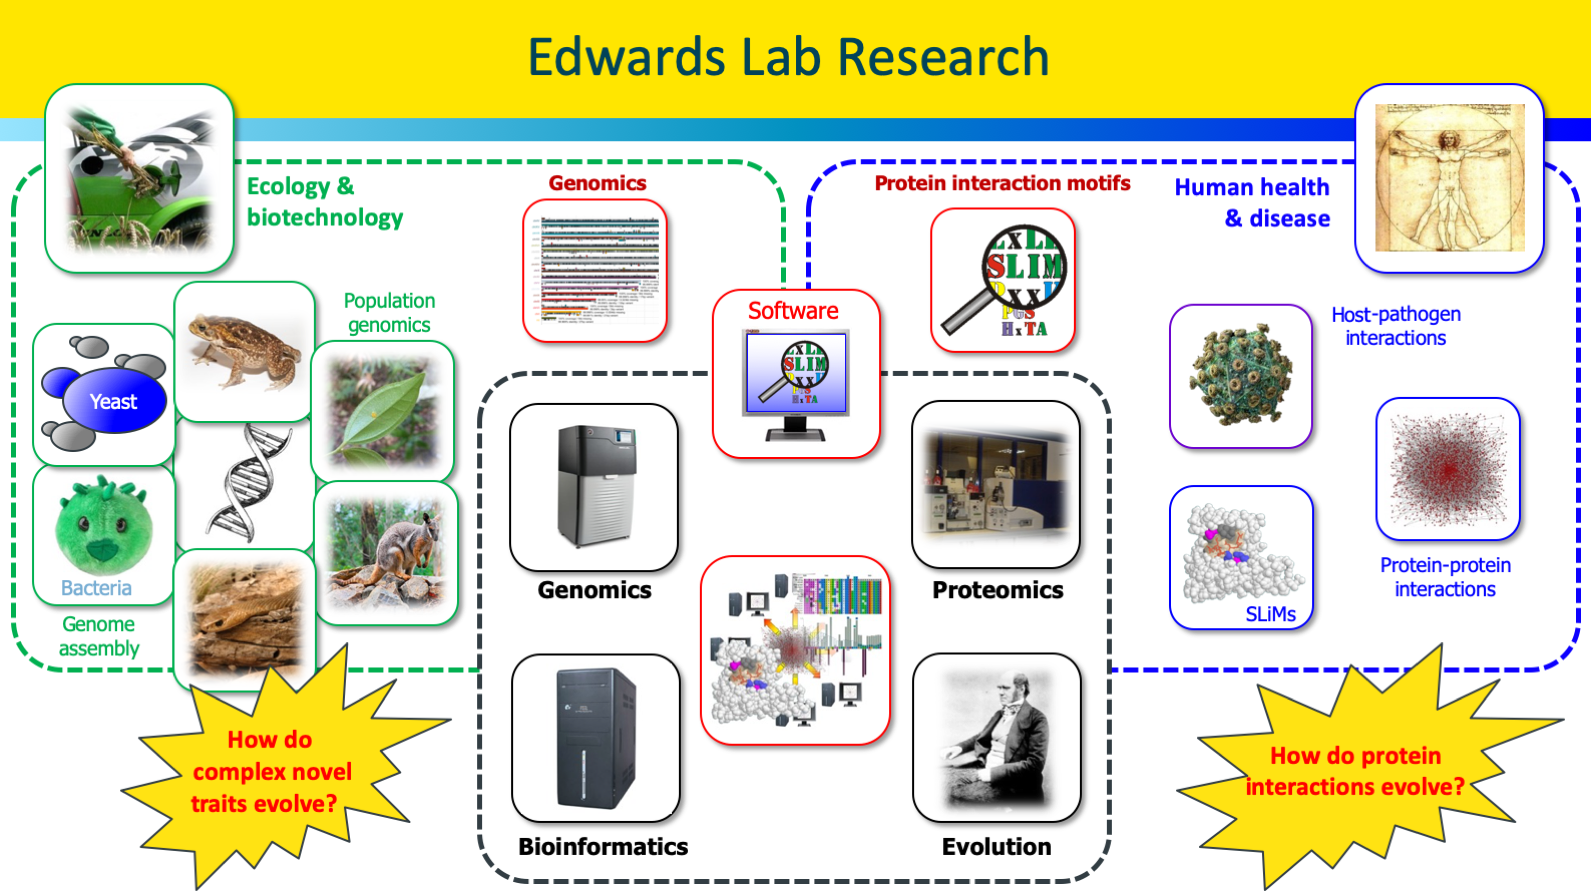 Overview of Edwards Lab research topics